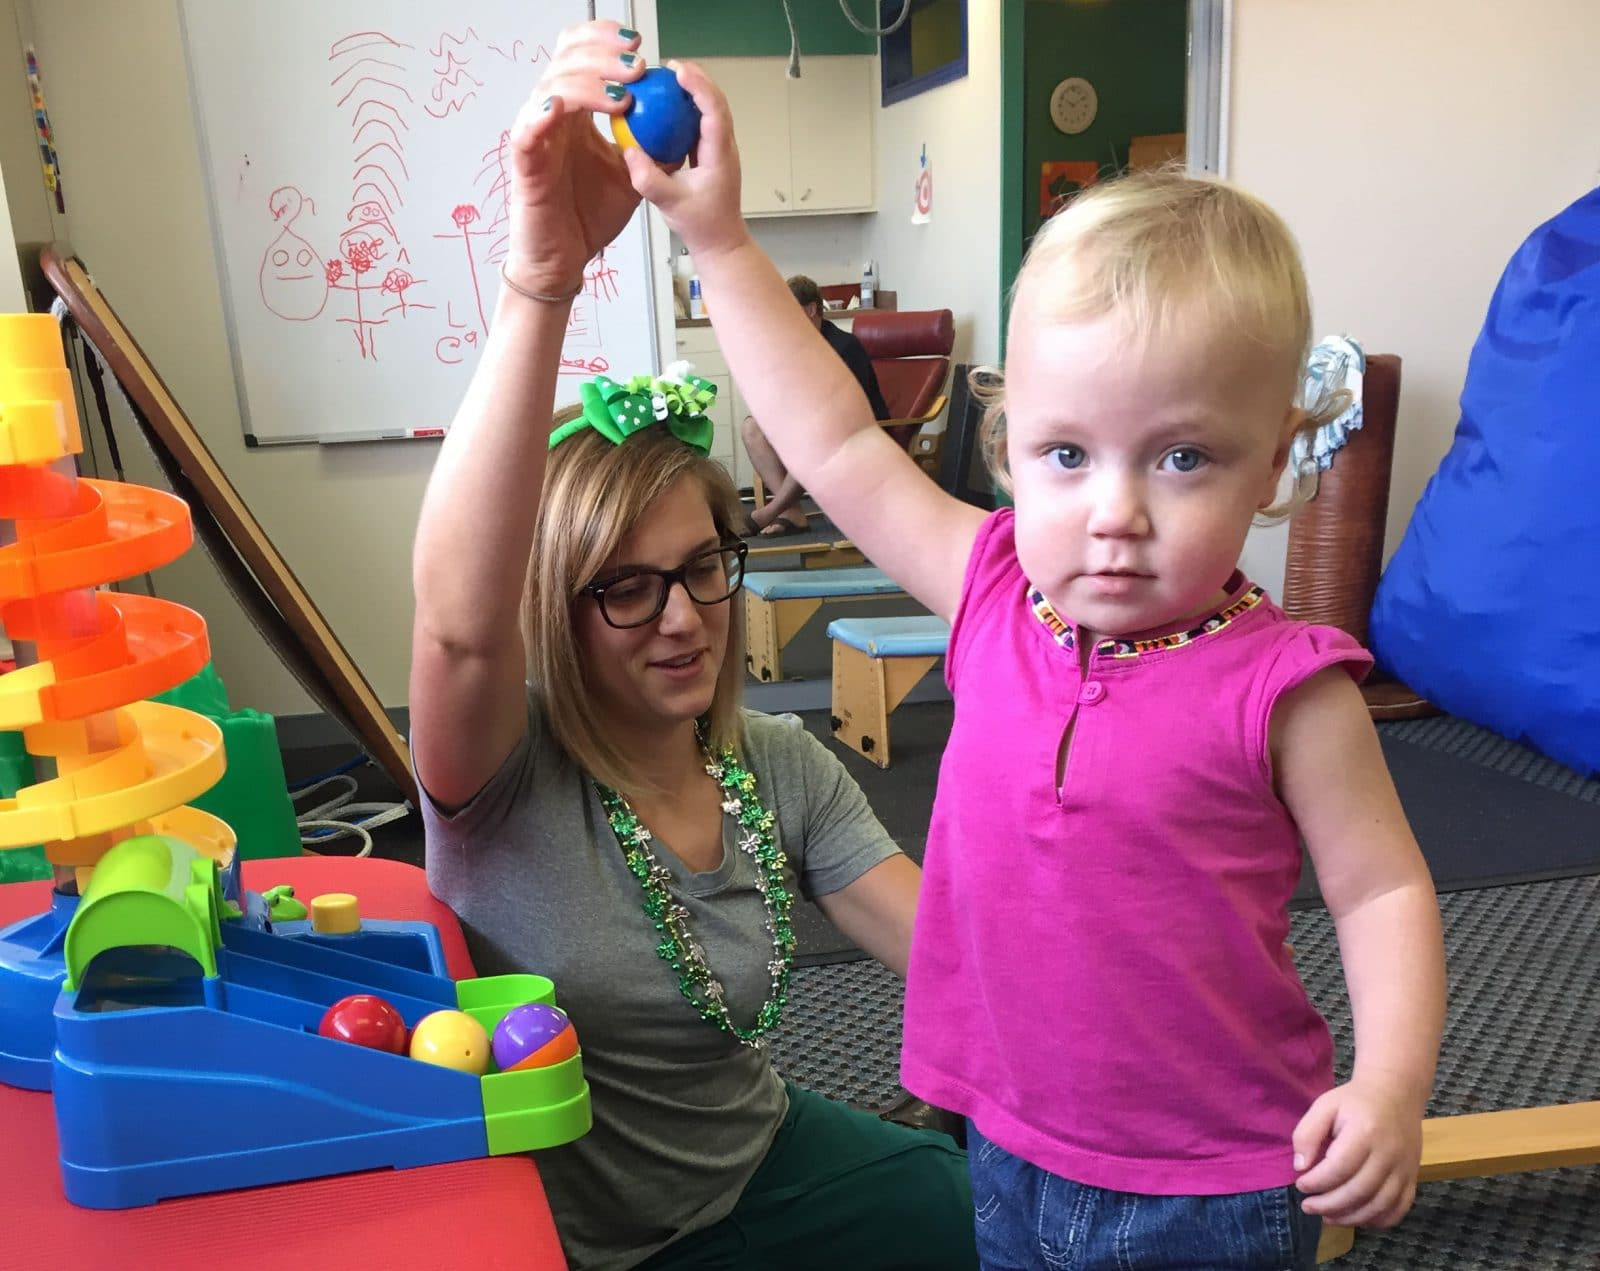 Little girl reaching for a ball working with her therapist